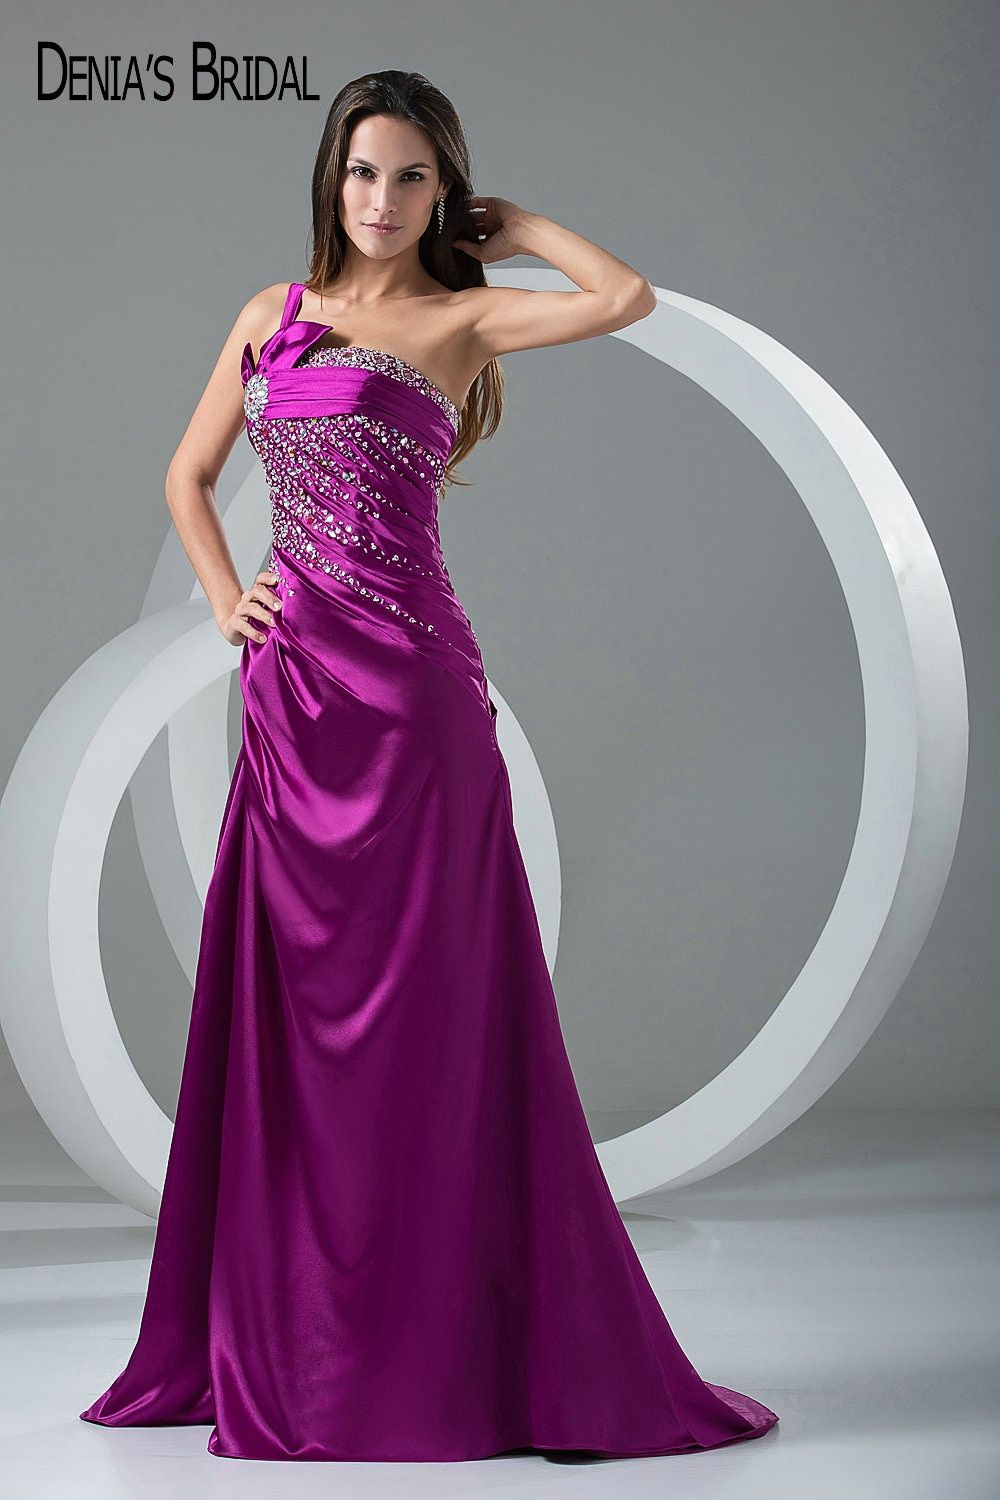 2017 A-Line Evening Dresses with Sweetheart Neckline Floor Length  Beaded Appliques Party Prom Gowns